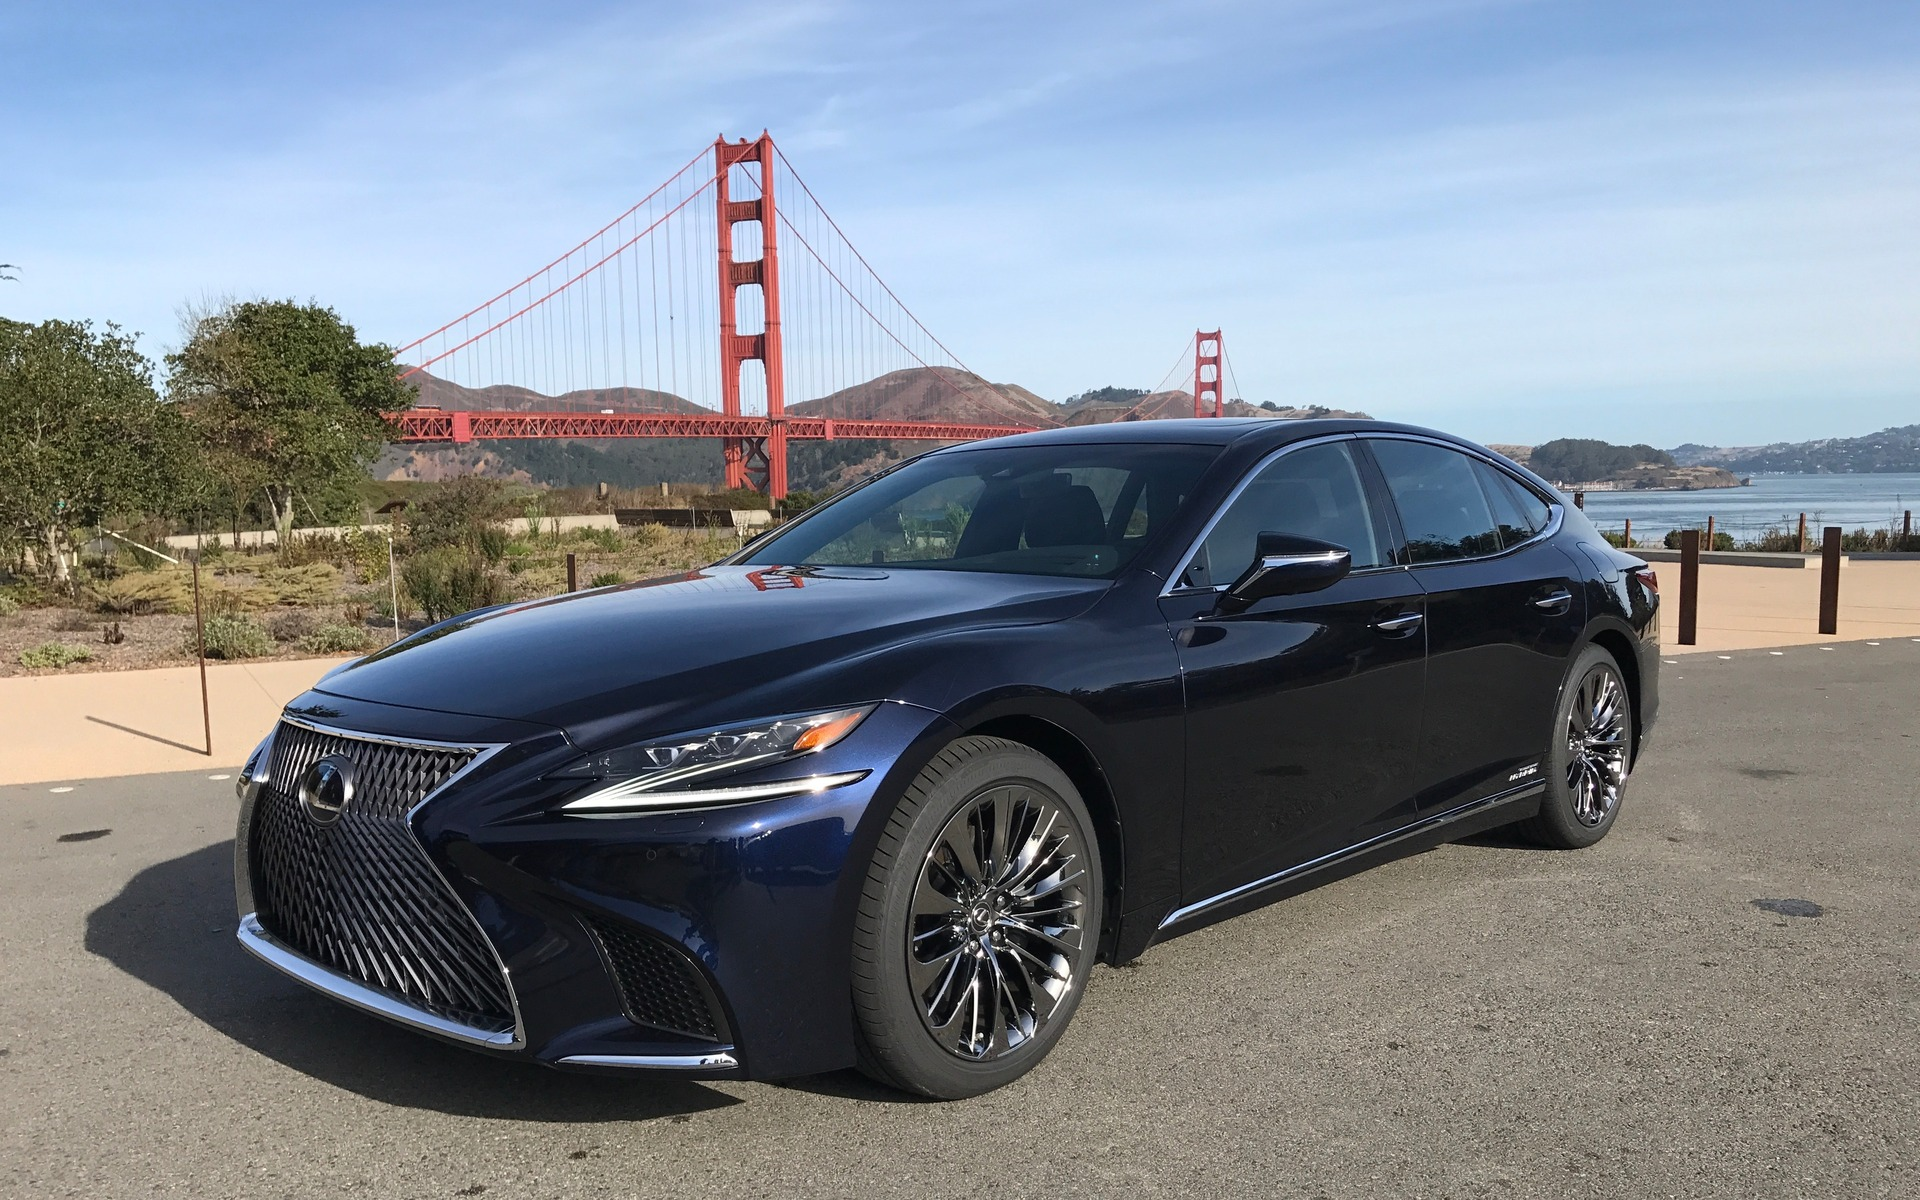 German Car Wallpaper 2018 Lexus Ls 500 More Refined And More Dynamic The Car